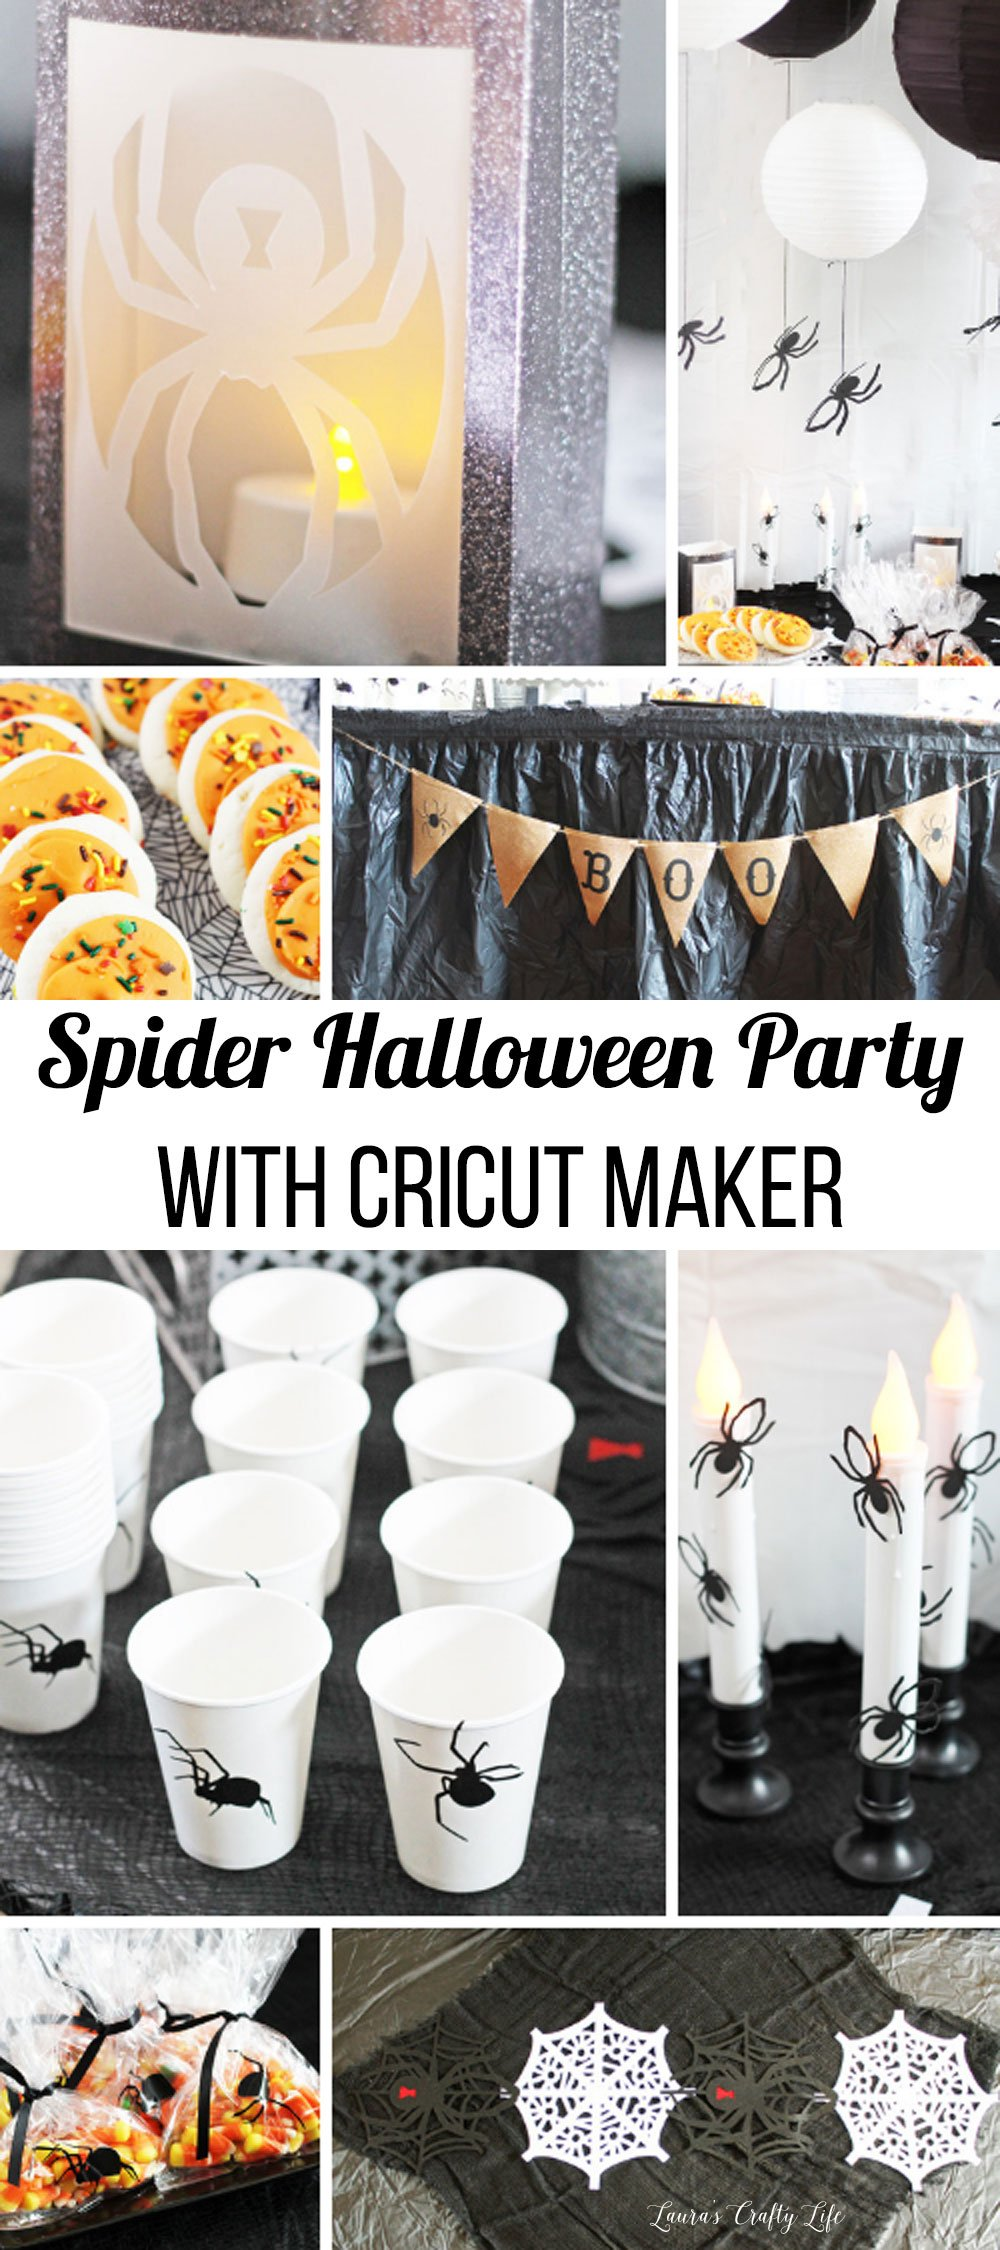 Spider Halloween Party with Cricut Maker - create seven unique spider projects for one amazing Halloween bash! #laurascraftylife #Halloween #Cricut #spider